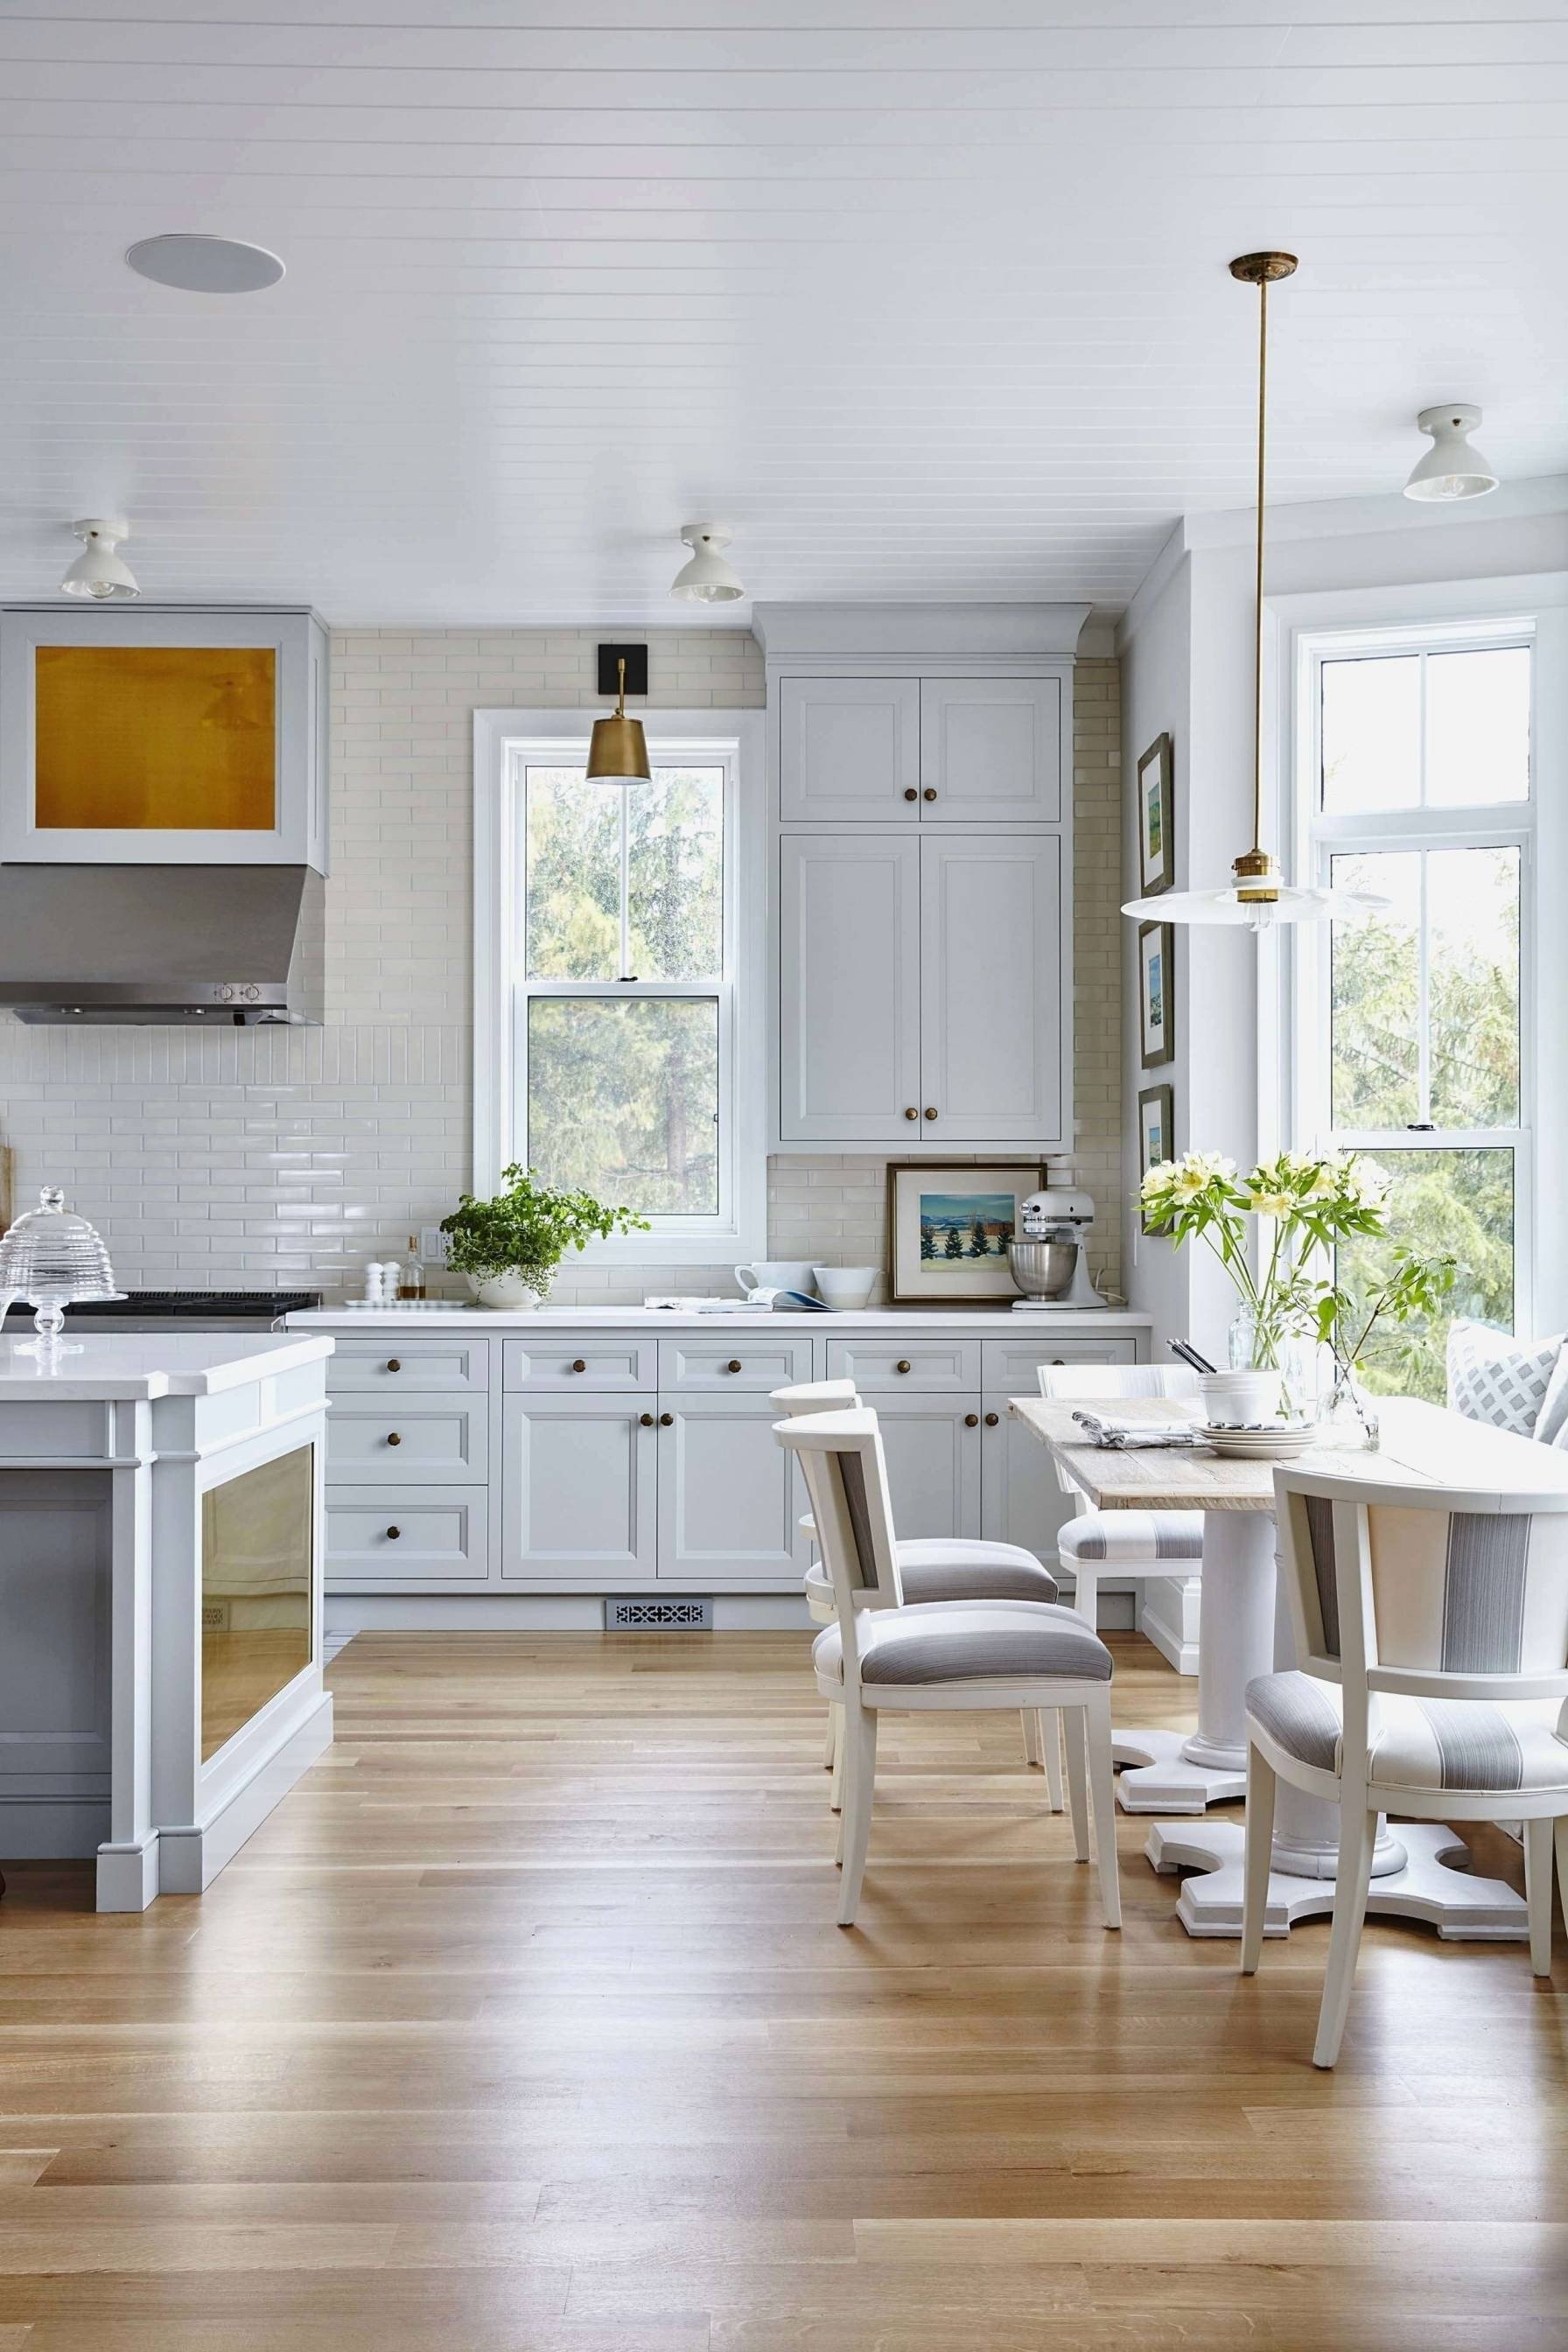 15 stylish kitchen hardwood floor ideas | unique flooring ideas throughout Kitchen Flooring Ideas